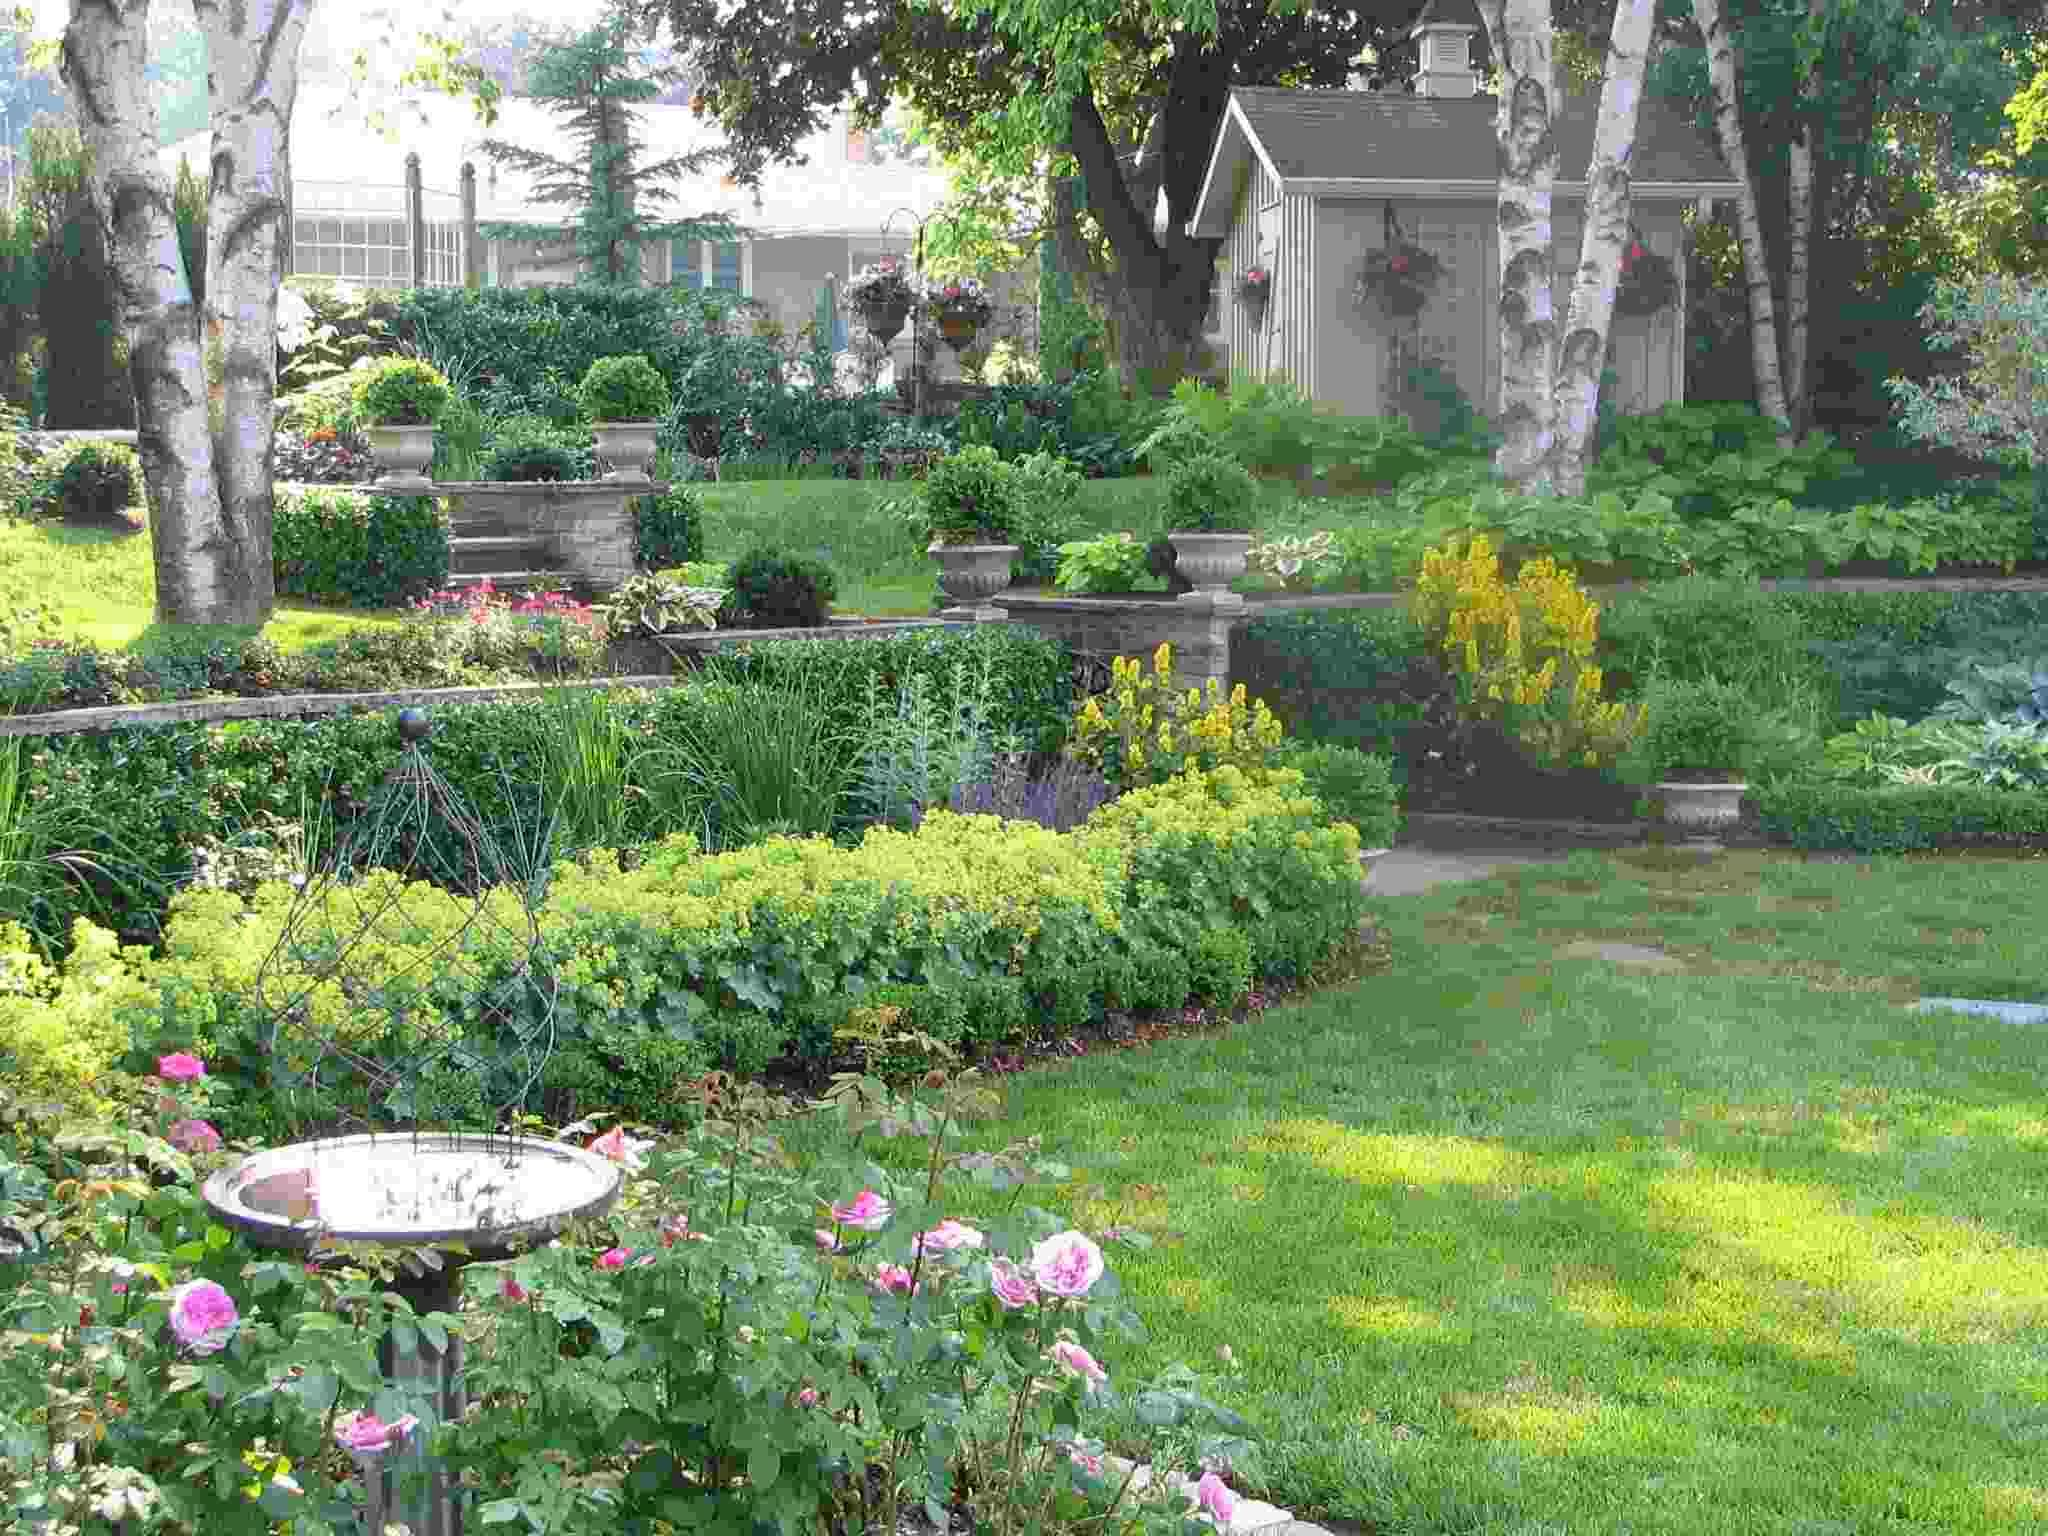 Four important factors for success with the perennial shade garden